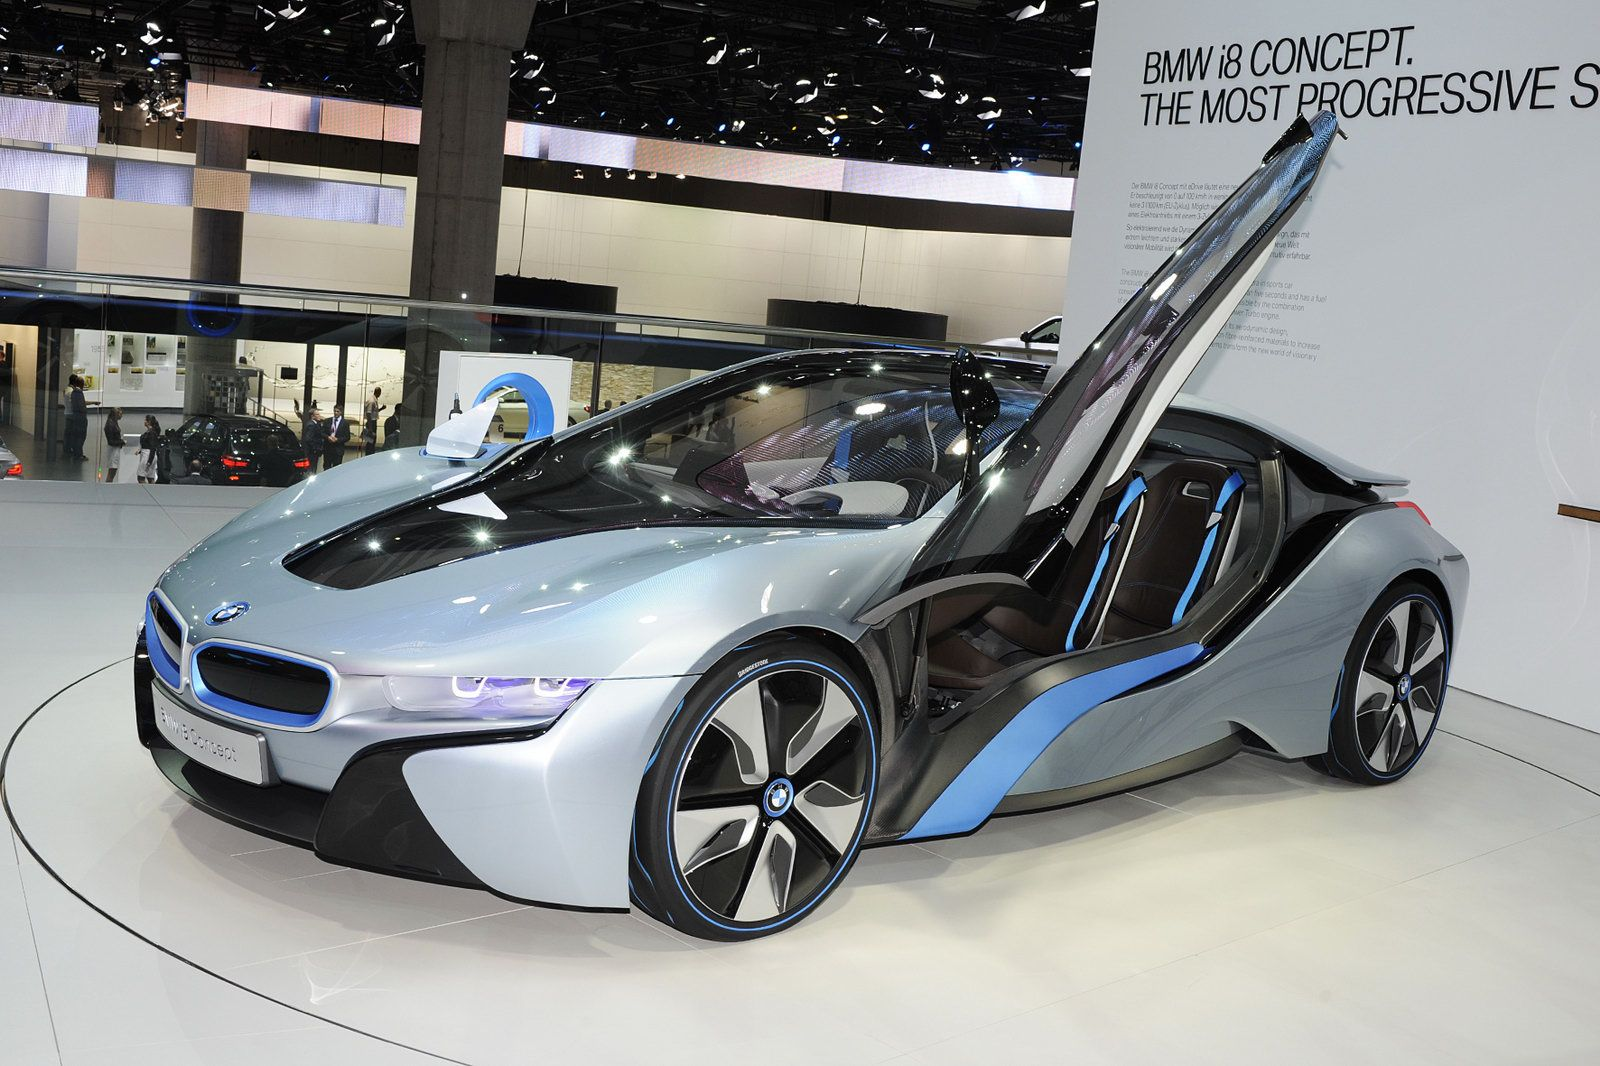 New 2013 Bmw I8 92 Mpg And 0 60 In 4 6 Cars Trucks Pinterest